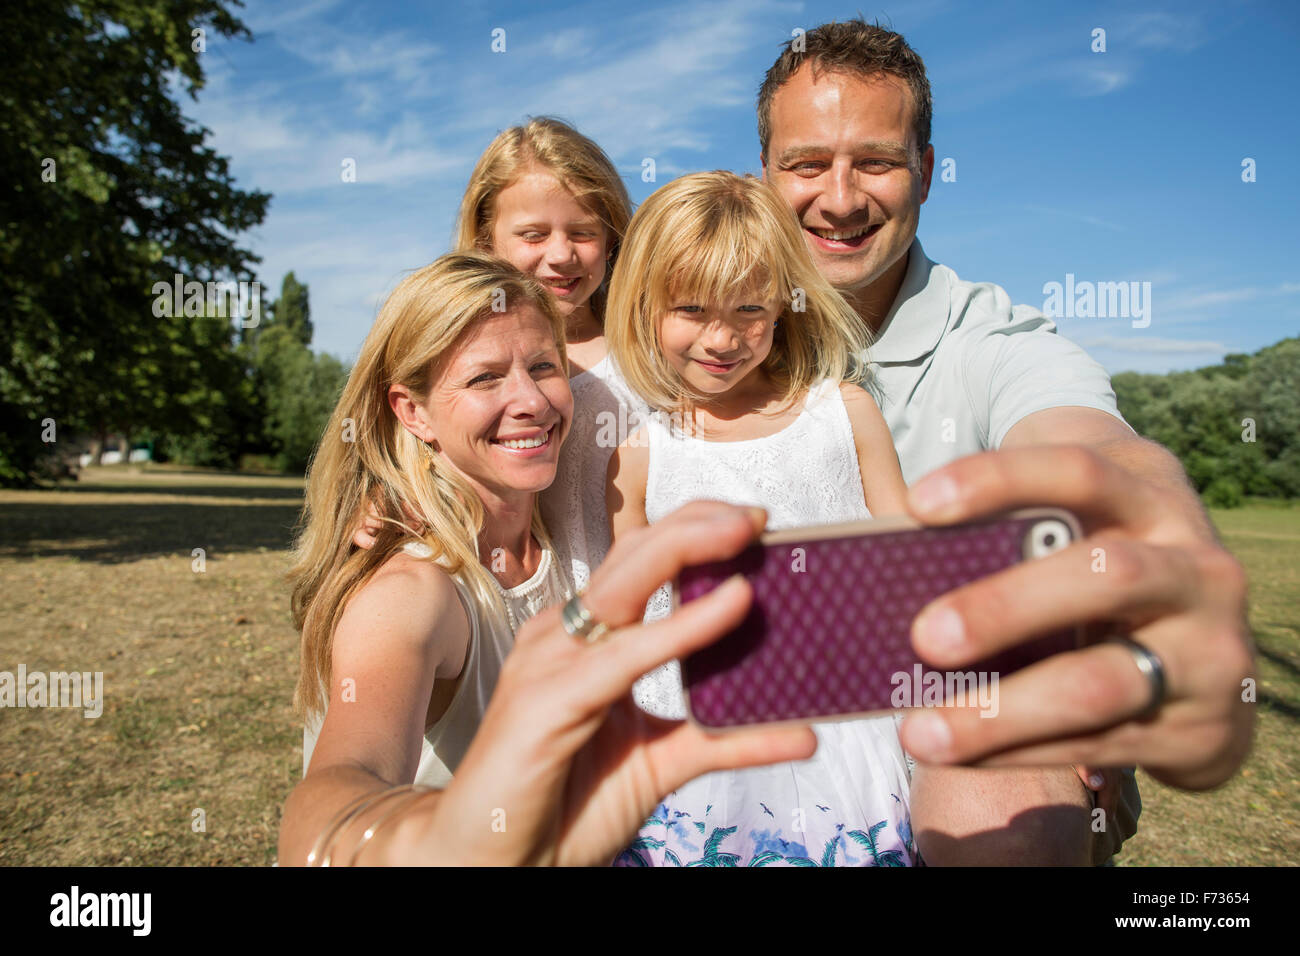 Family with two children, taking a selfie. - Stock Image